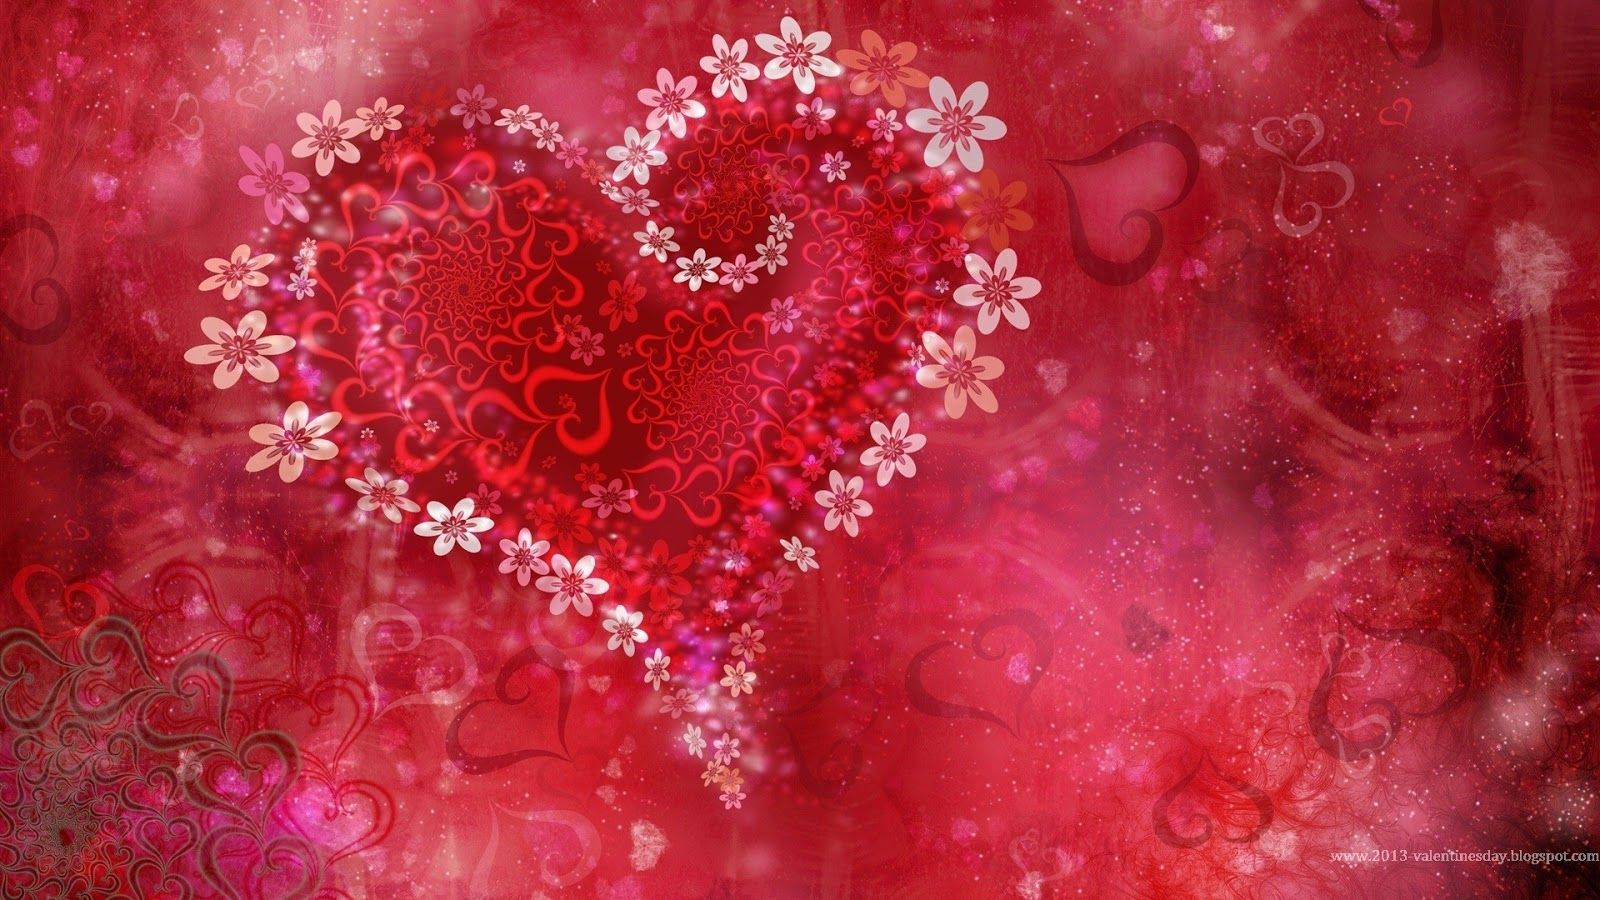 Valentines day hearts HD wallpapers 1024px and 1920px | Online Quotes ...